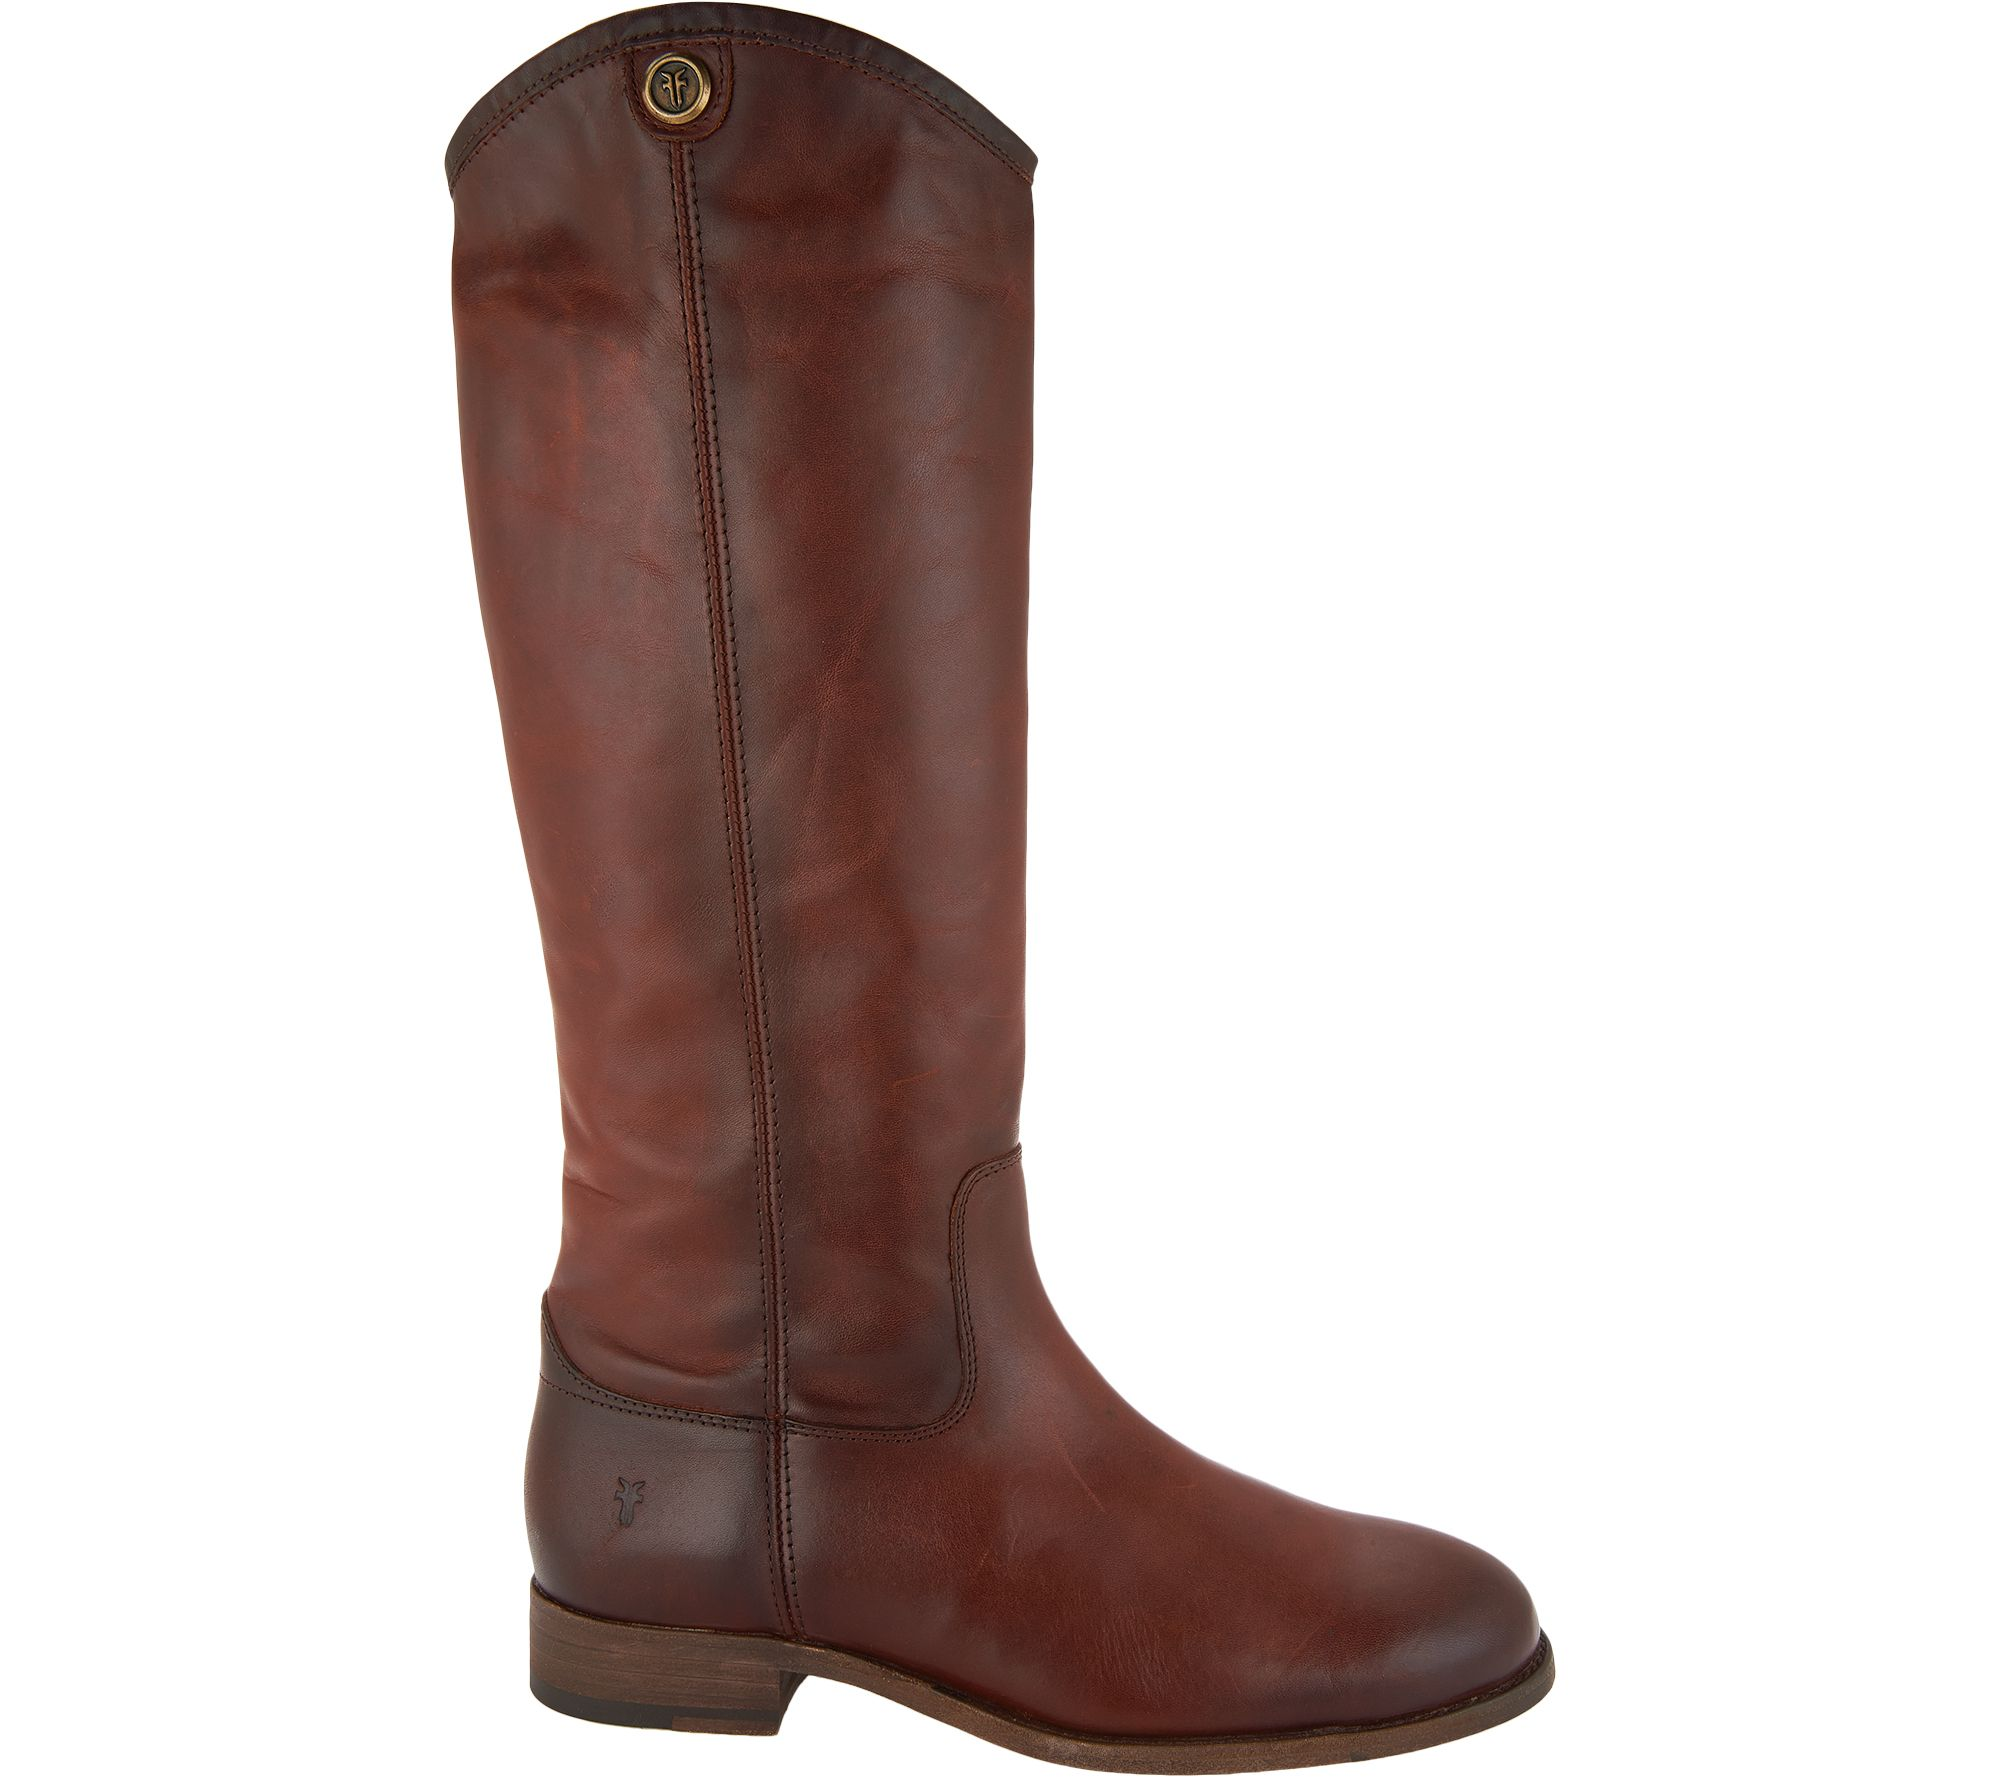 f1a8d379b37 Frye Leather Tall Shaft Pull-on Boots - Melissa Button 2 - Page 1 — QVC.com